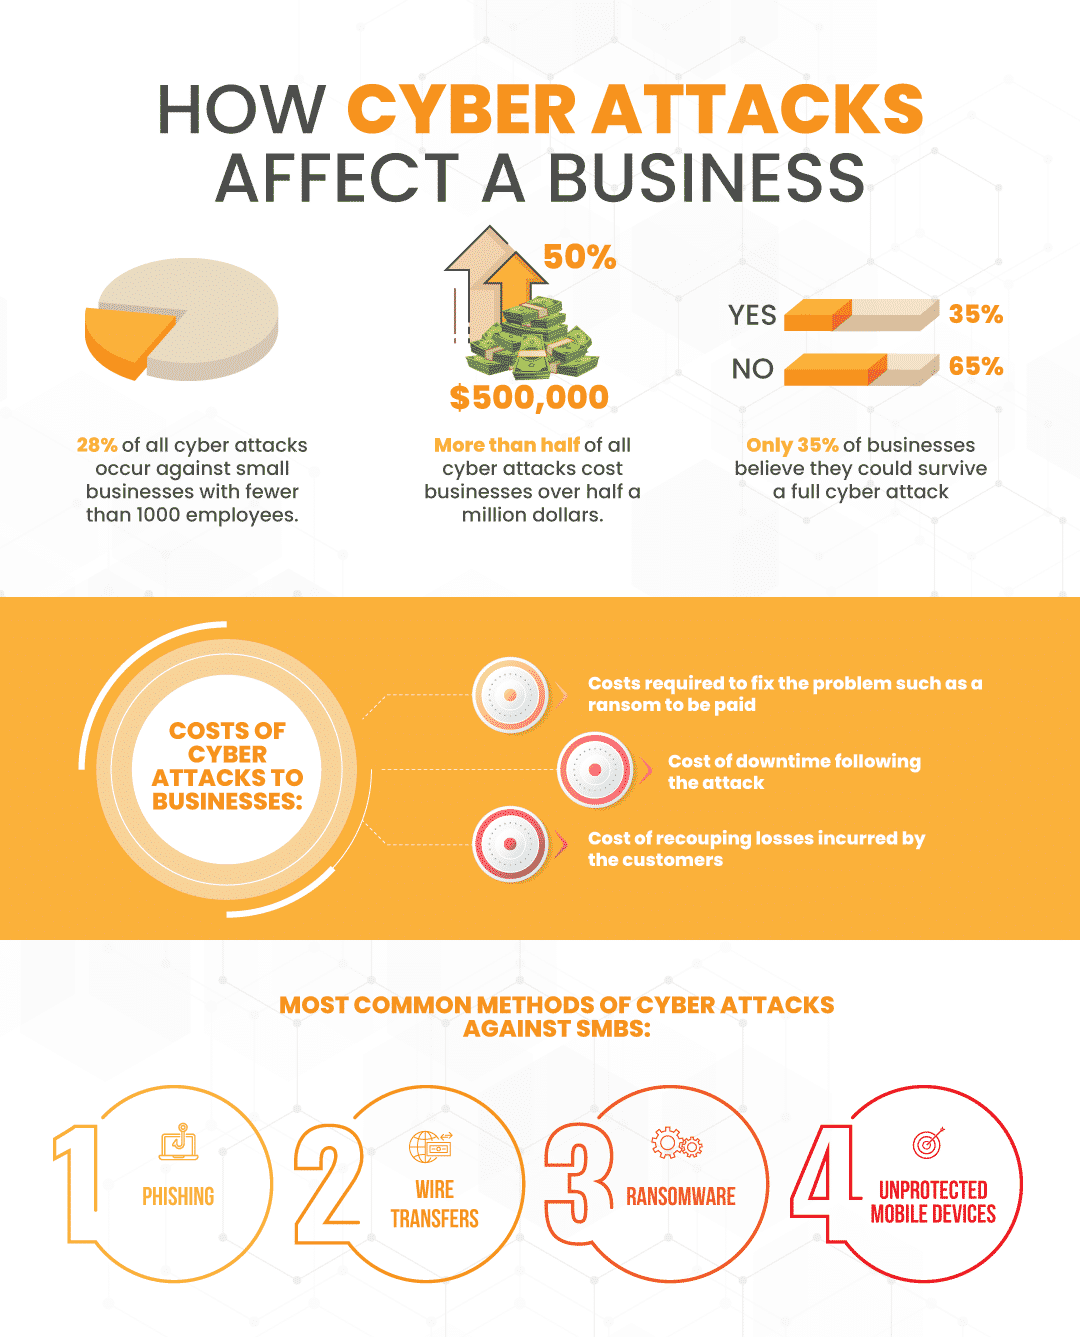 how cyber attacks affect a business infographic with supporting statistics